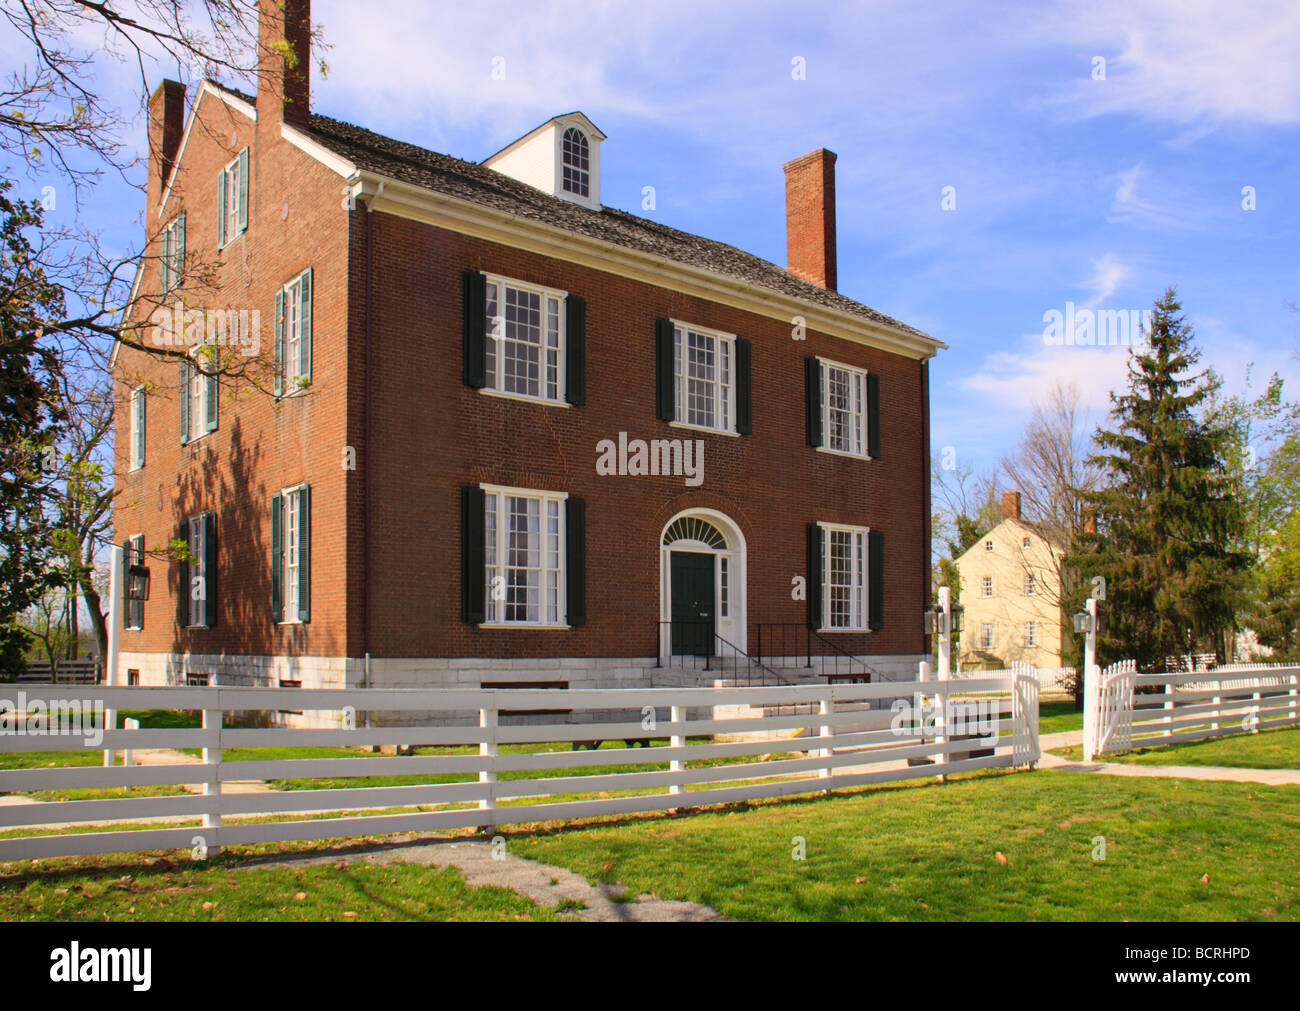 Shaker Hill Architecture Stock Photos & Shaker Hill Architecture ...